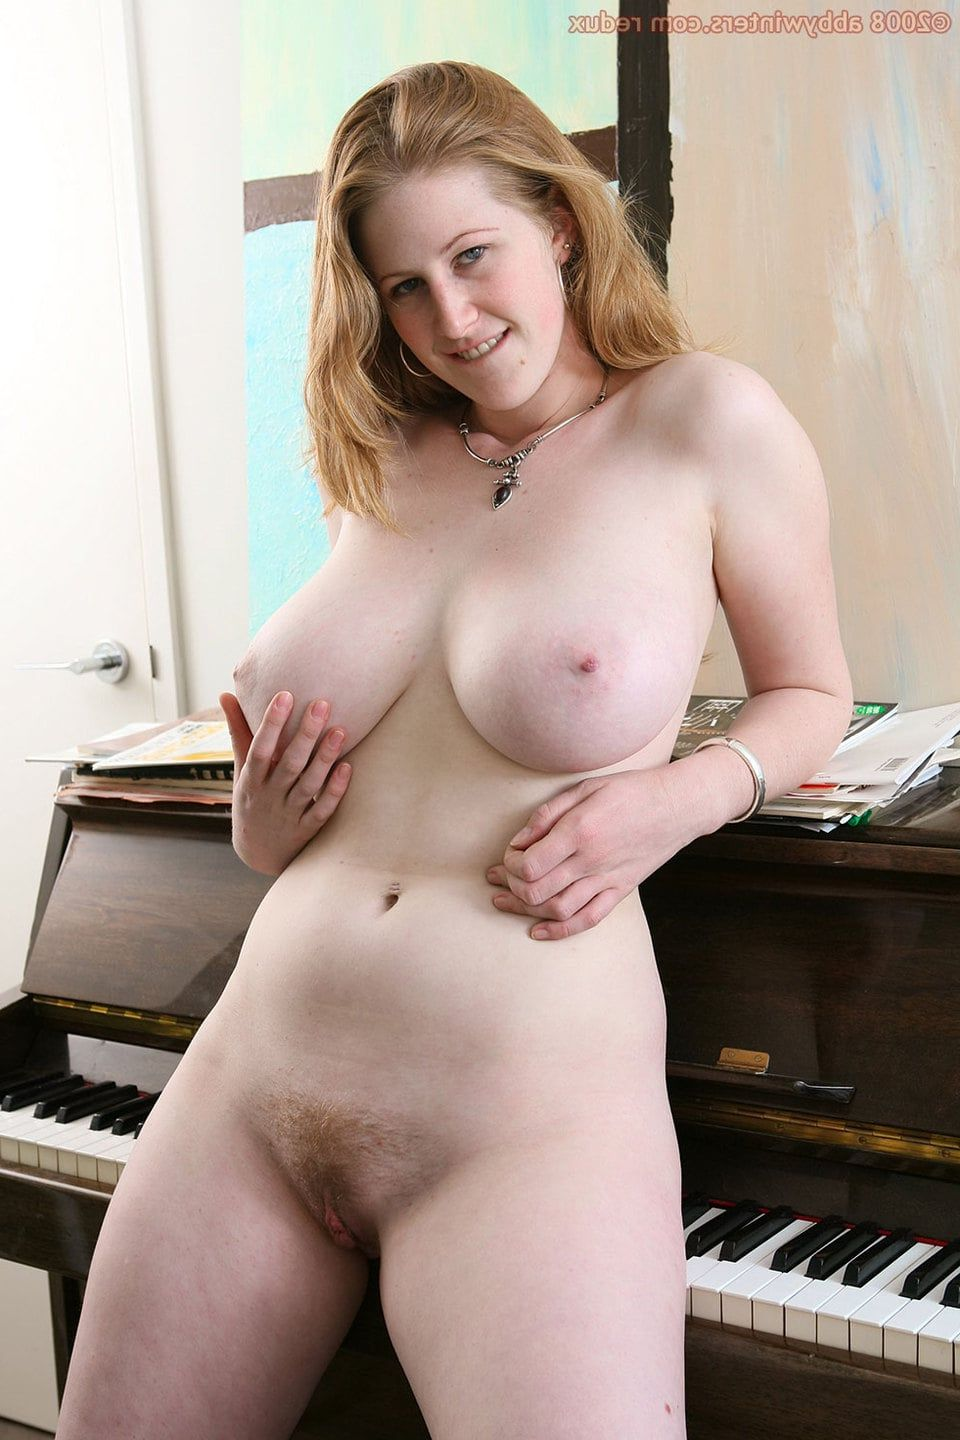 young little girl sexy nudist anoword